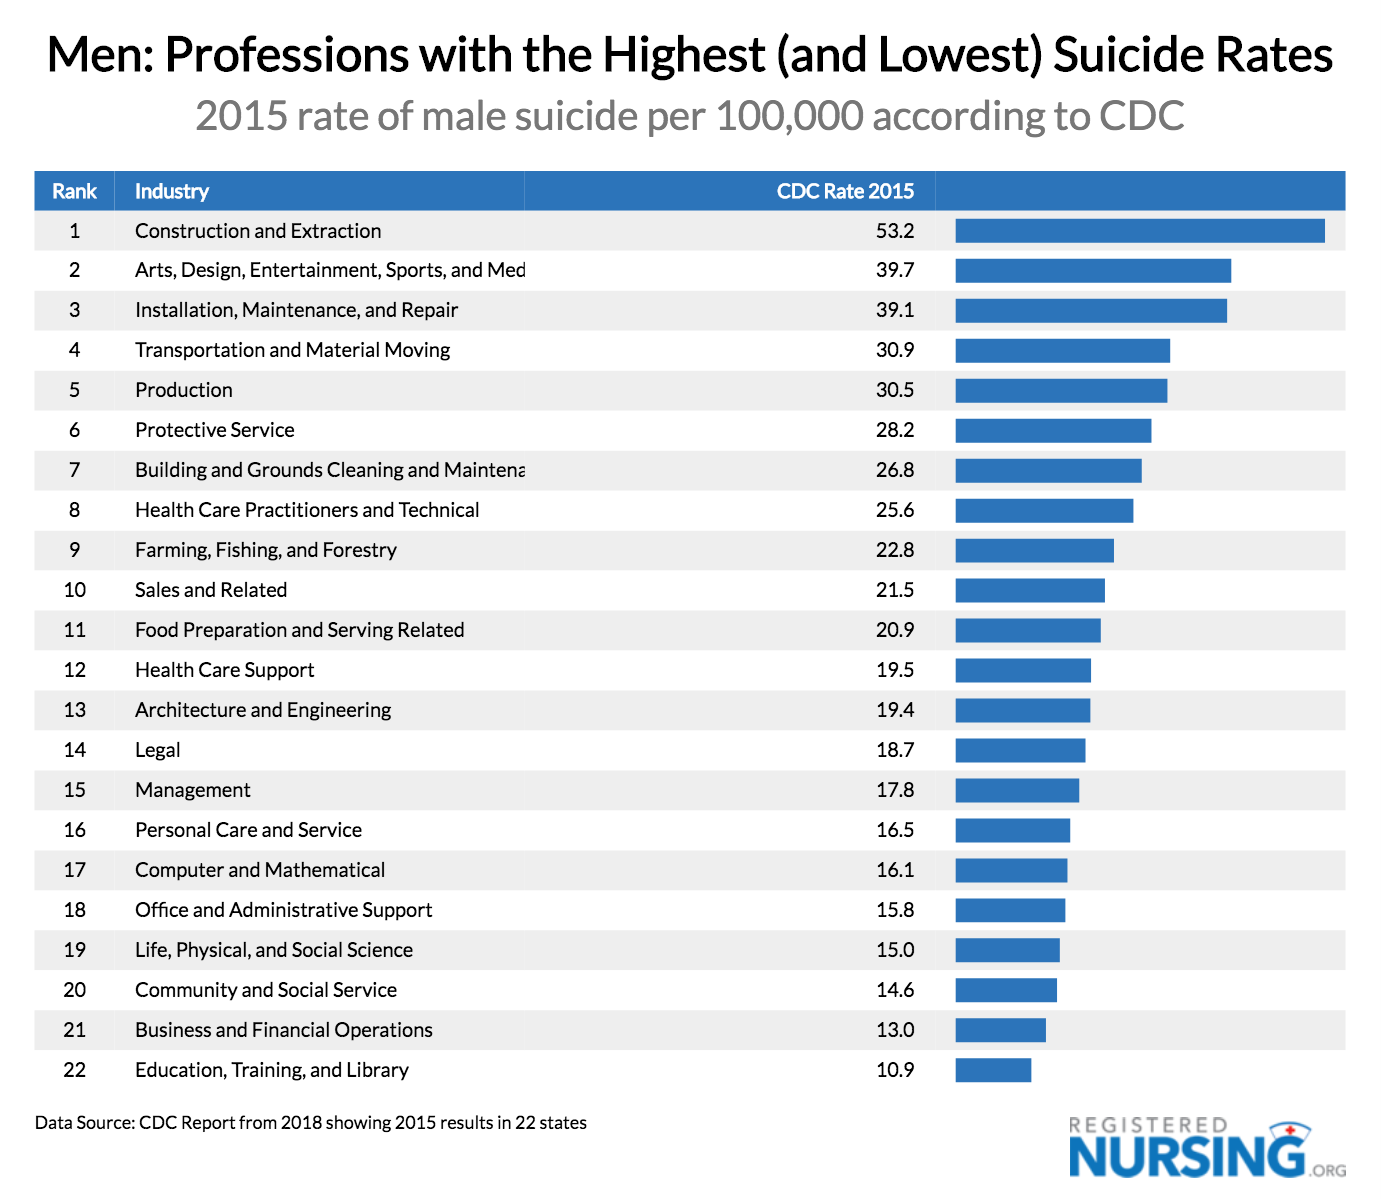 The Professions with Highest (and Lowest) Suicide Rates